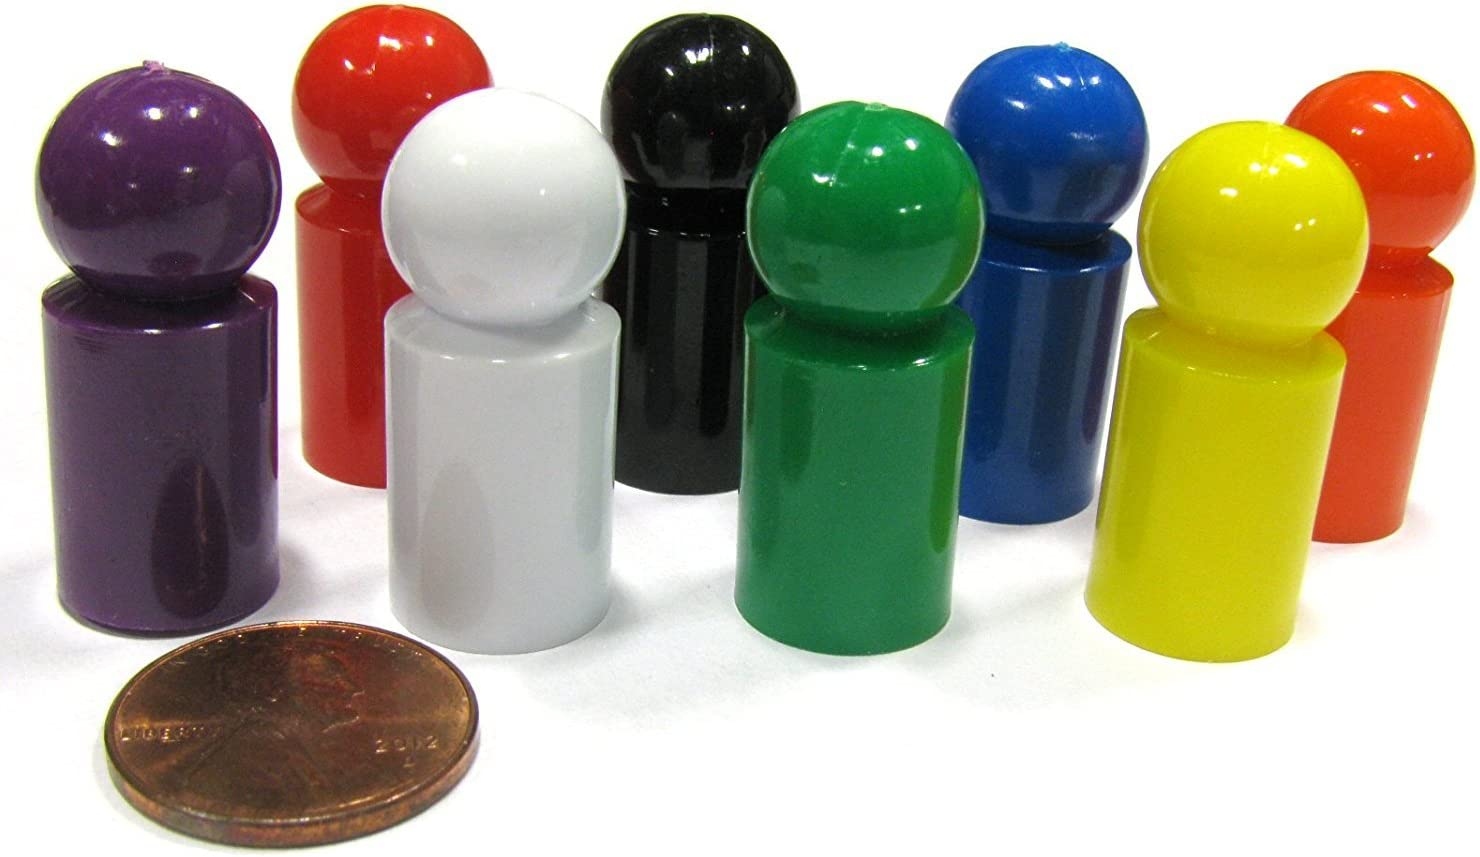 NEW Set of 8 Koplow Ball Pawns 8 Colors Game Playing Pieces